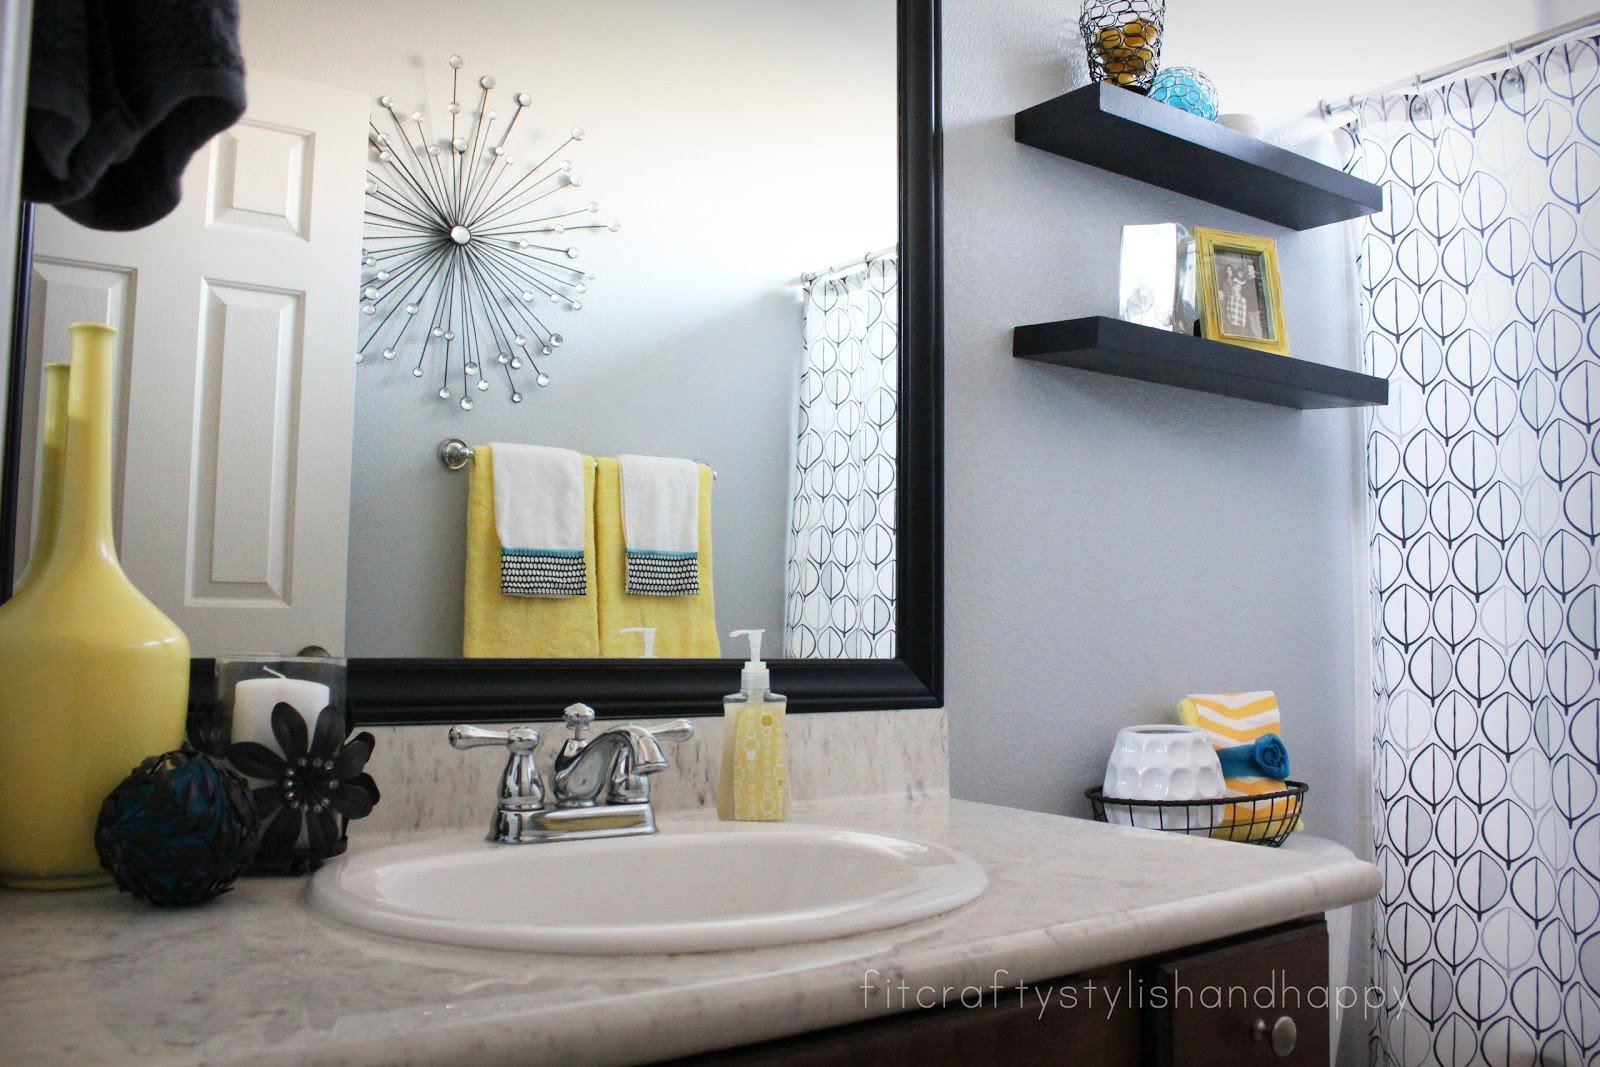 Yellow and Gray Bathroom Decor Lovely Fit Crafty Stylish and Happy Guest Bathroom Makeover